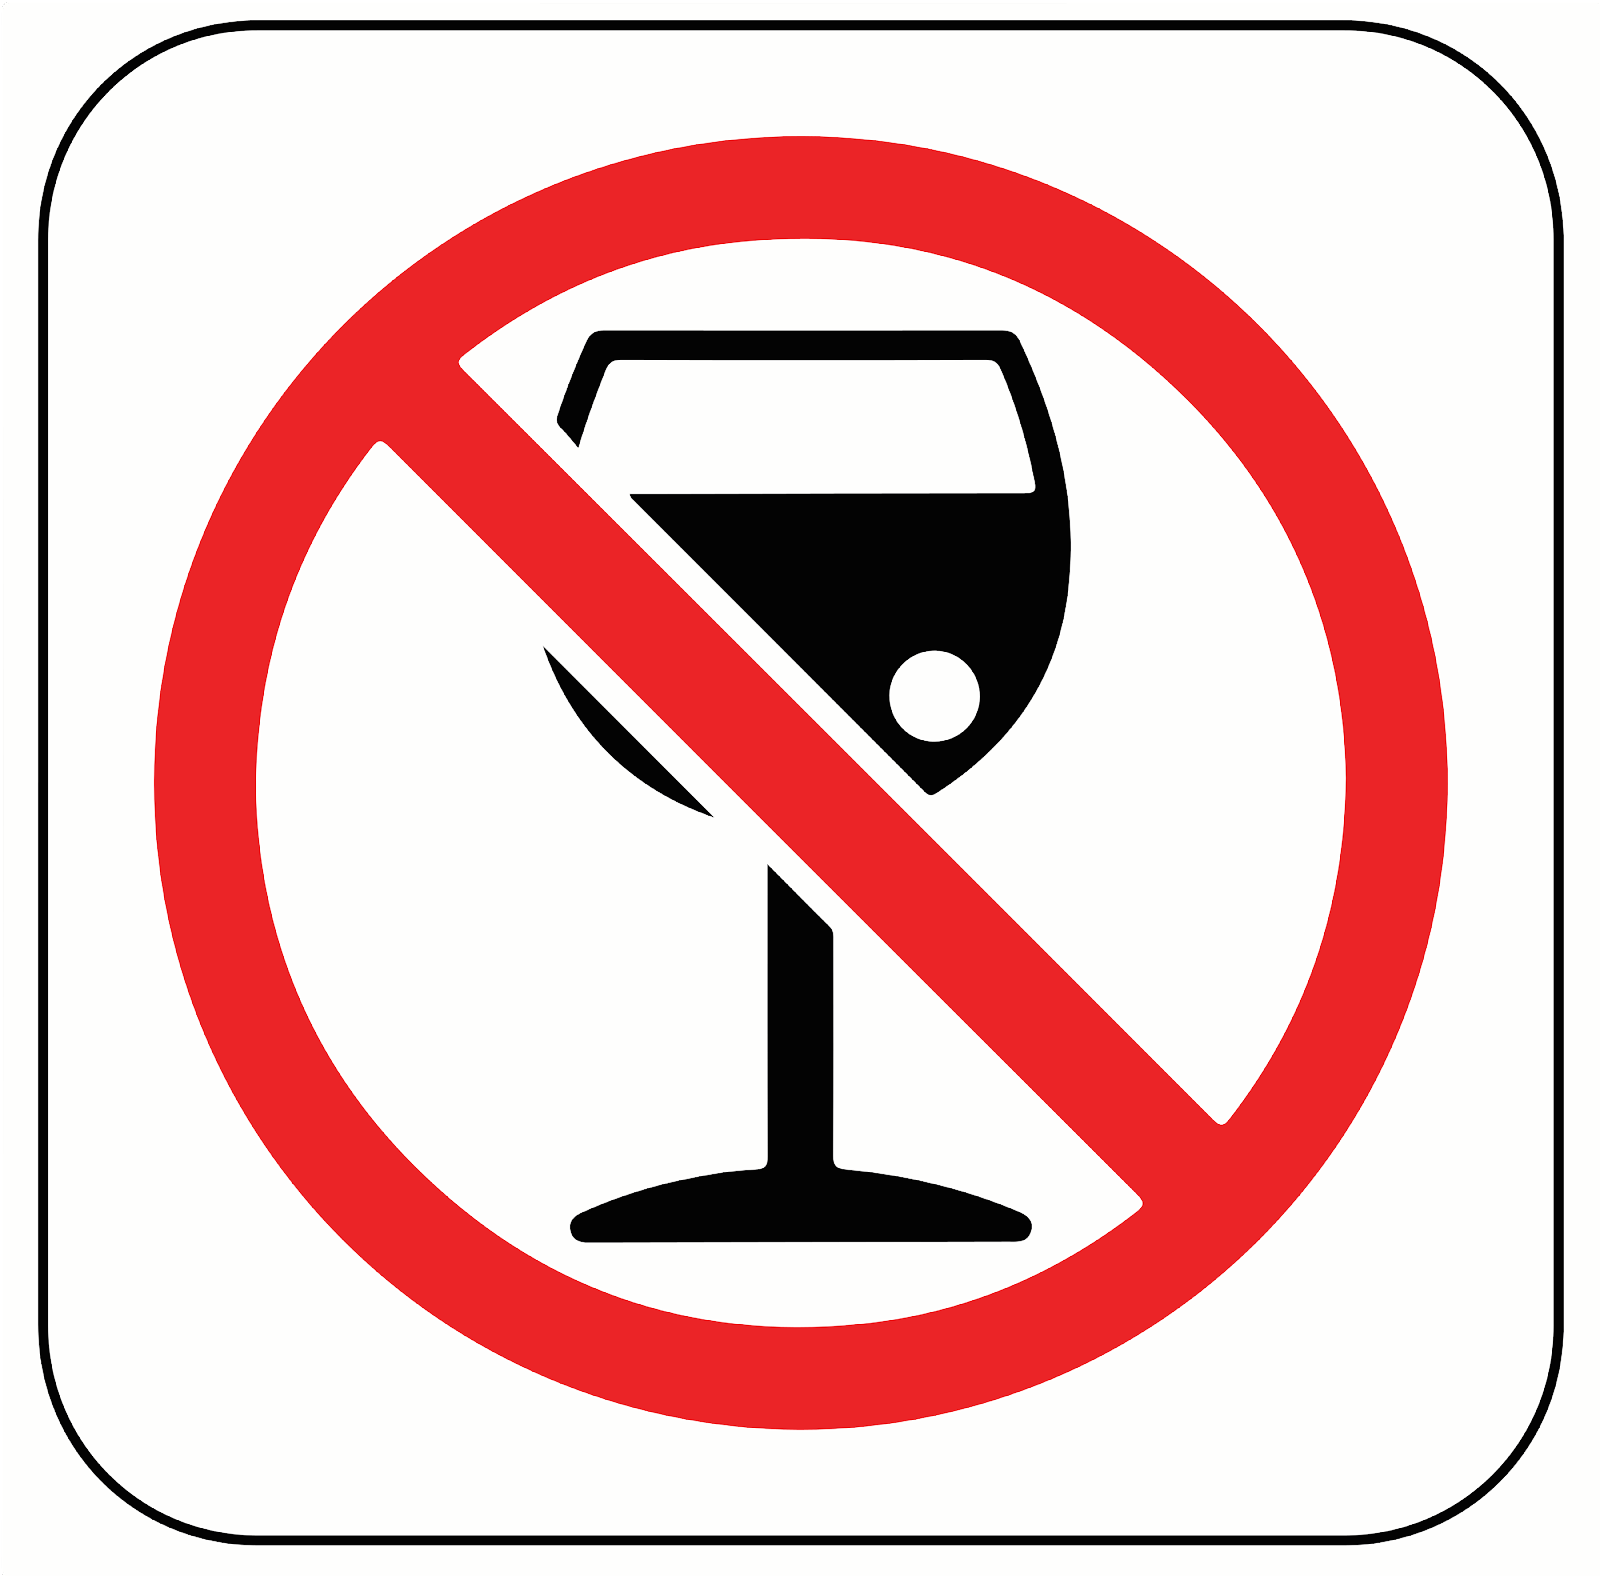 No_alcohol-1.svg.png